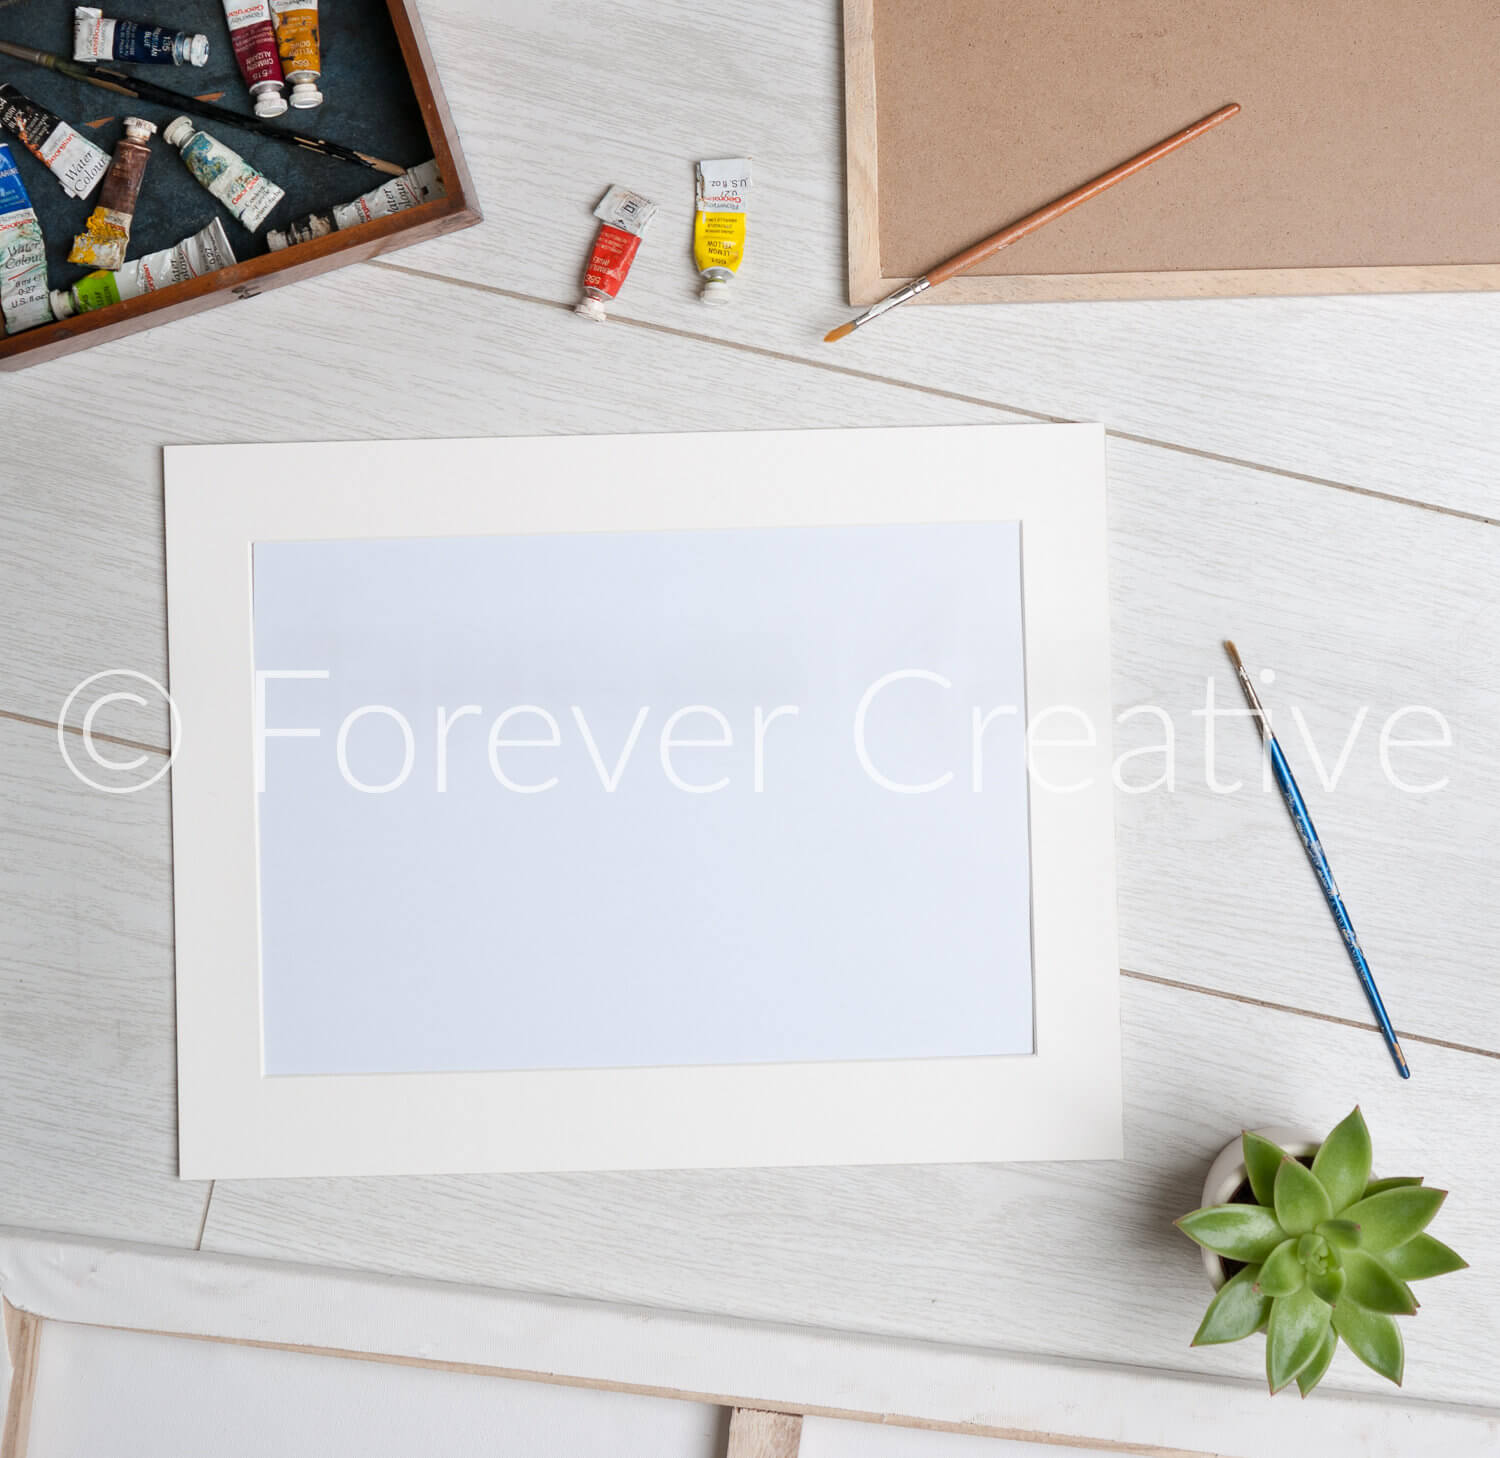 Blank stock photography for an artist producing framed prints